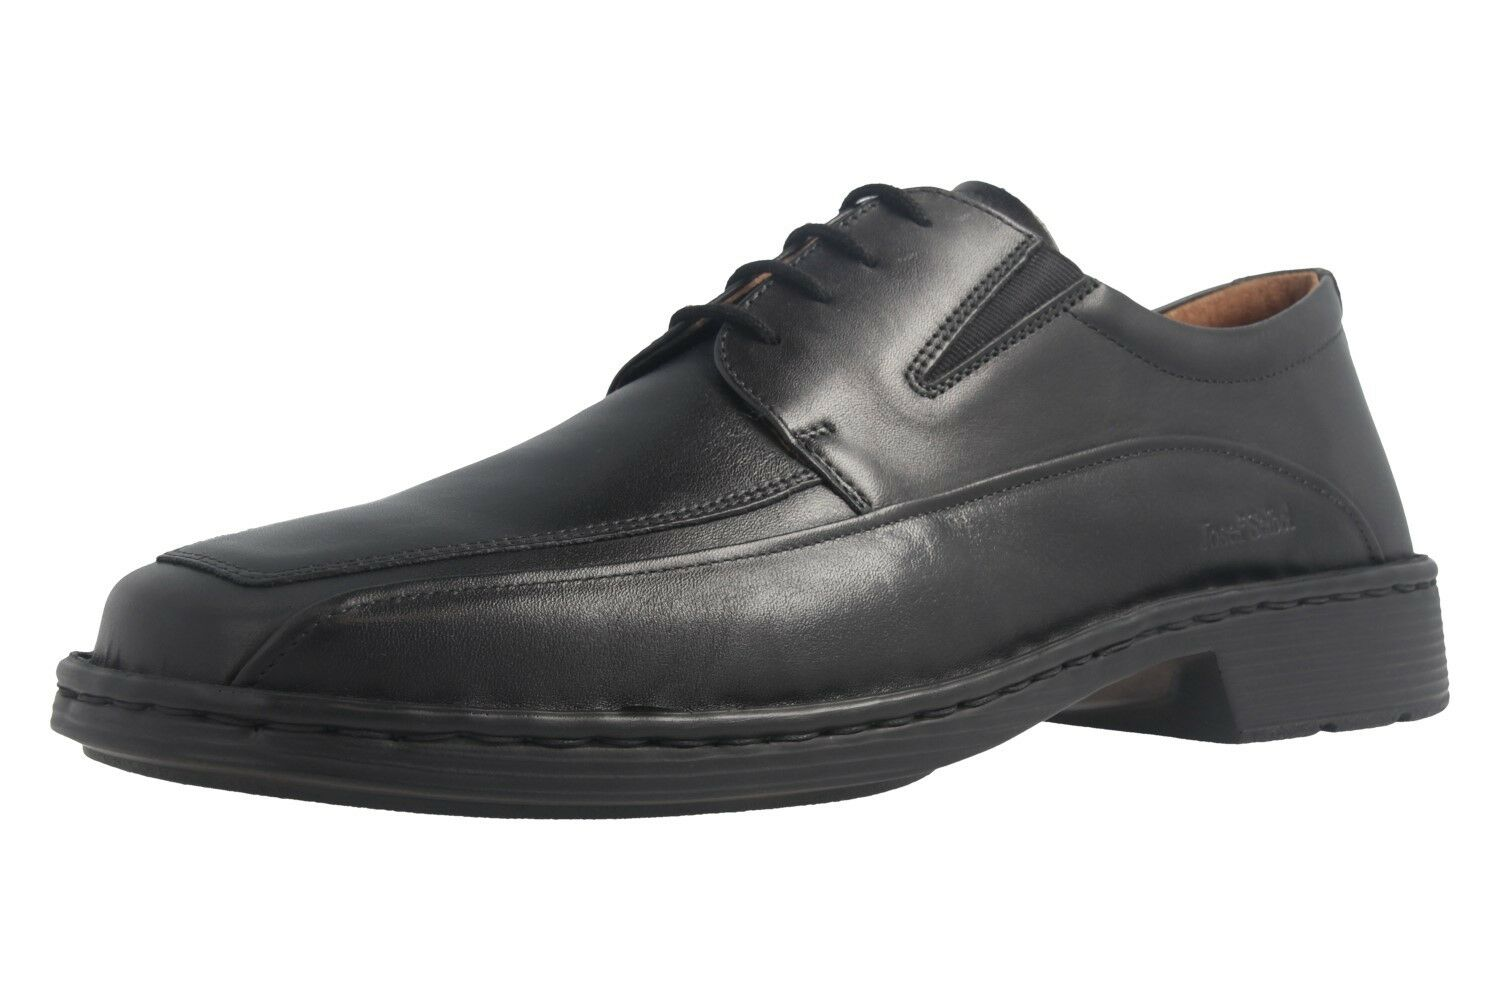 Josef Seibel Chaussures Basses Grandes Tailles Grand Chaussures Homme